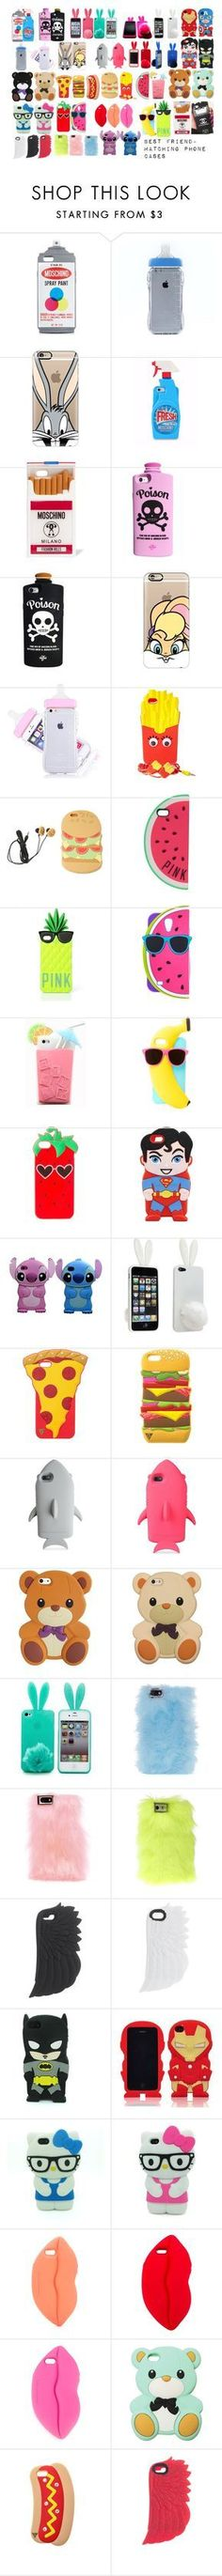 """Matching Best Friend Phone cases"" by lazii-gul-16 ❤ liked on Polyvore featuring Moschino, Casetify, Valfré, Forever 21, Victoria's Secret, Victoria's Secret PINK, Samsung, Pink Stitch, STELLA McCARTNEY and Skinnydip"